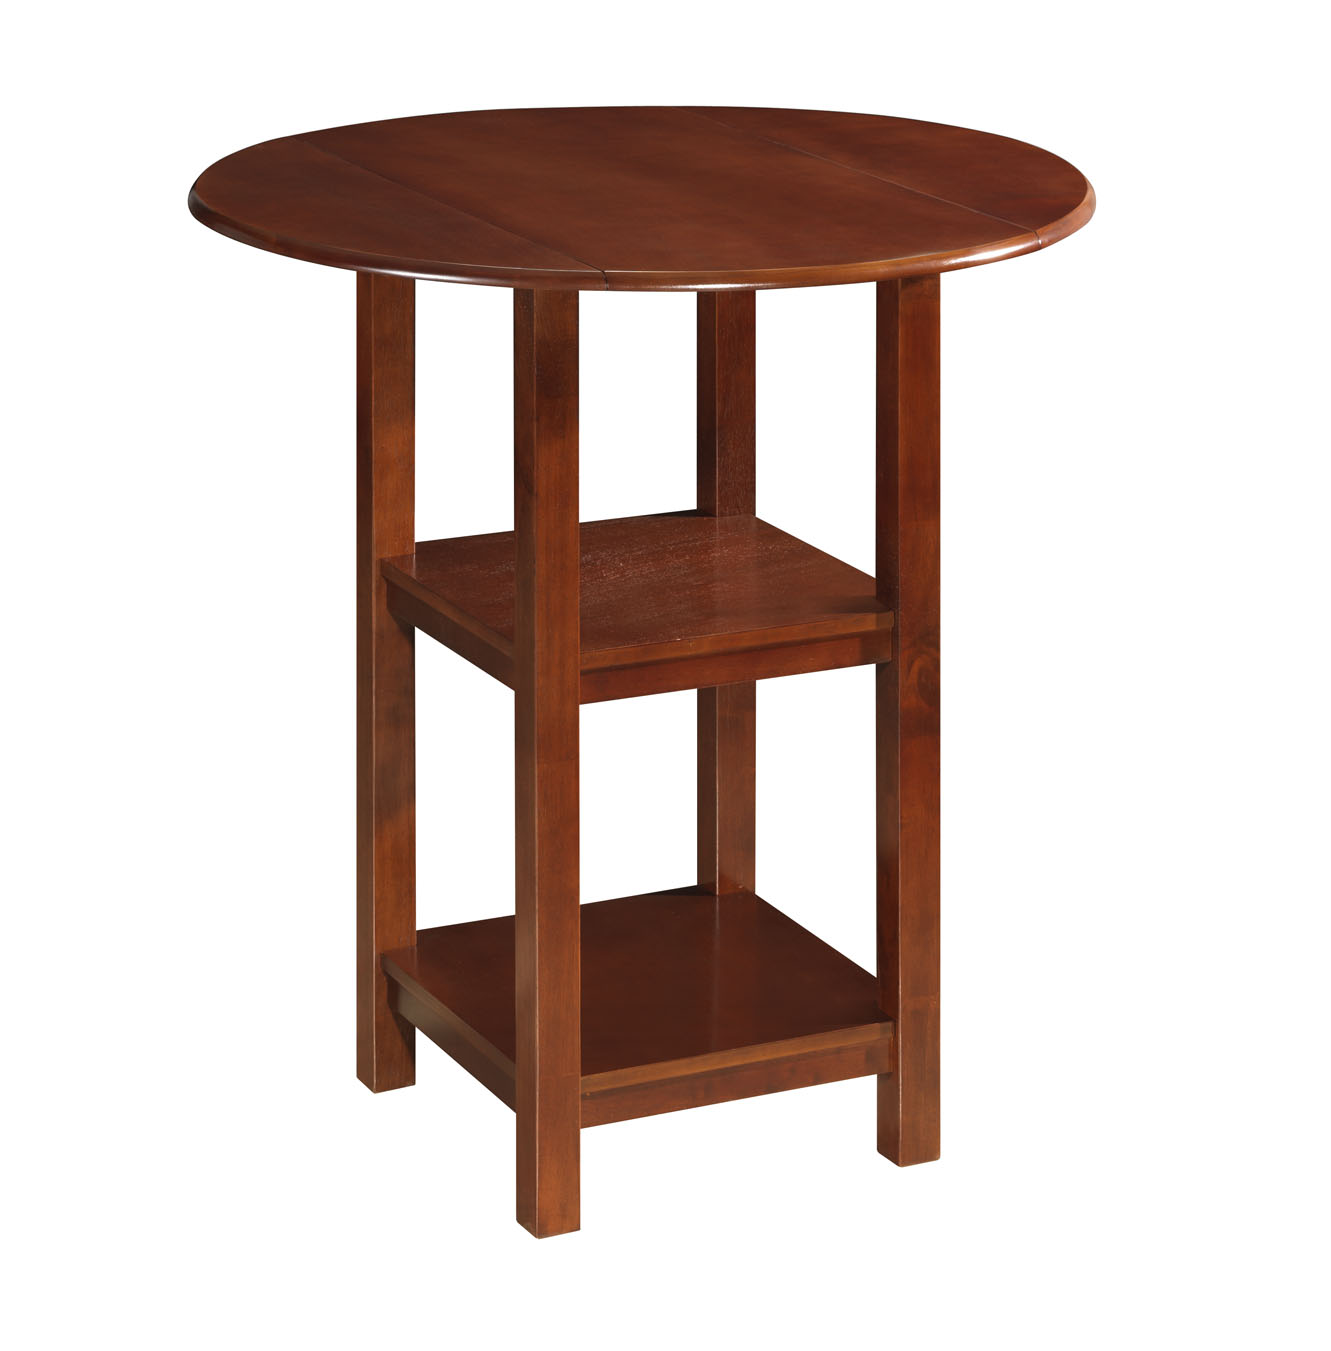 Boraam 72342 Powellton Double Drop Leaf Pub Table, Cherry